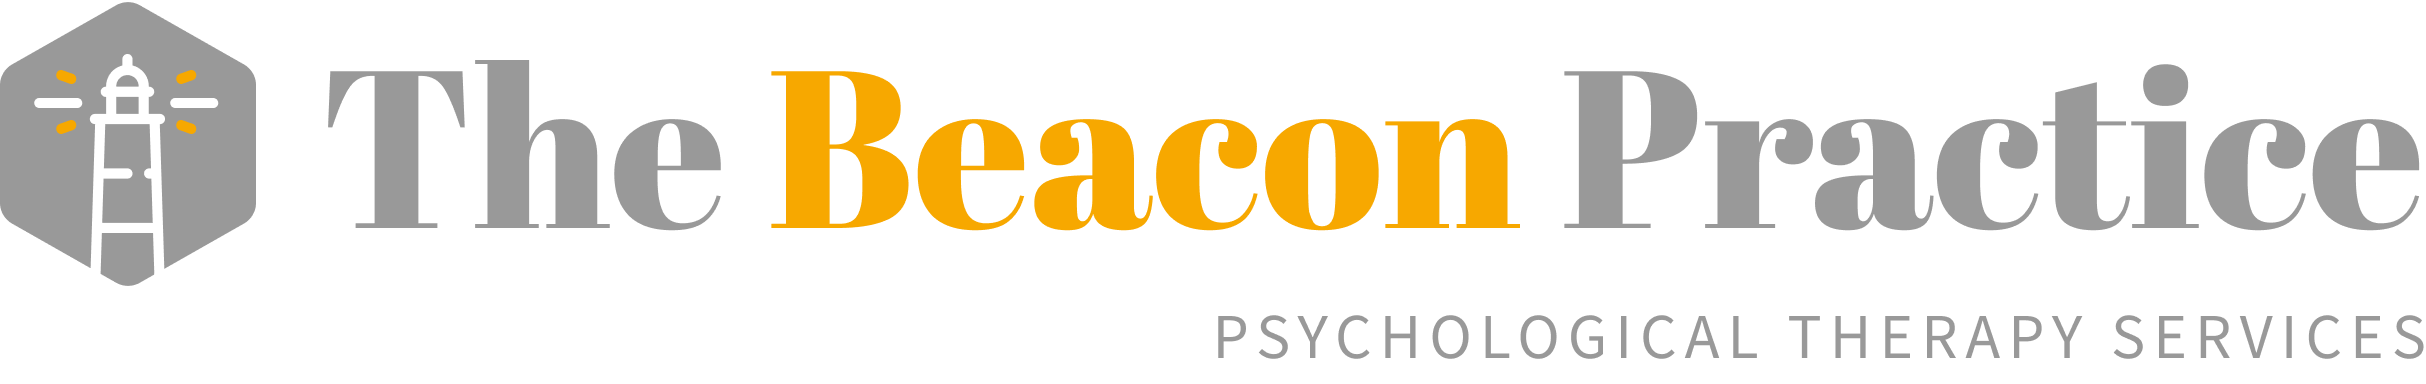 The Beacon Practice logo